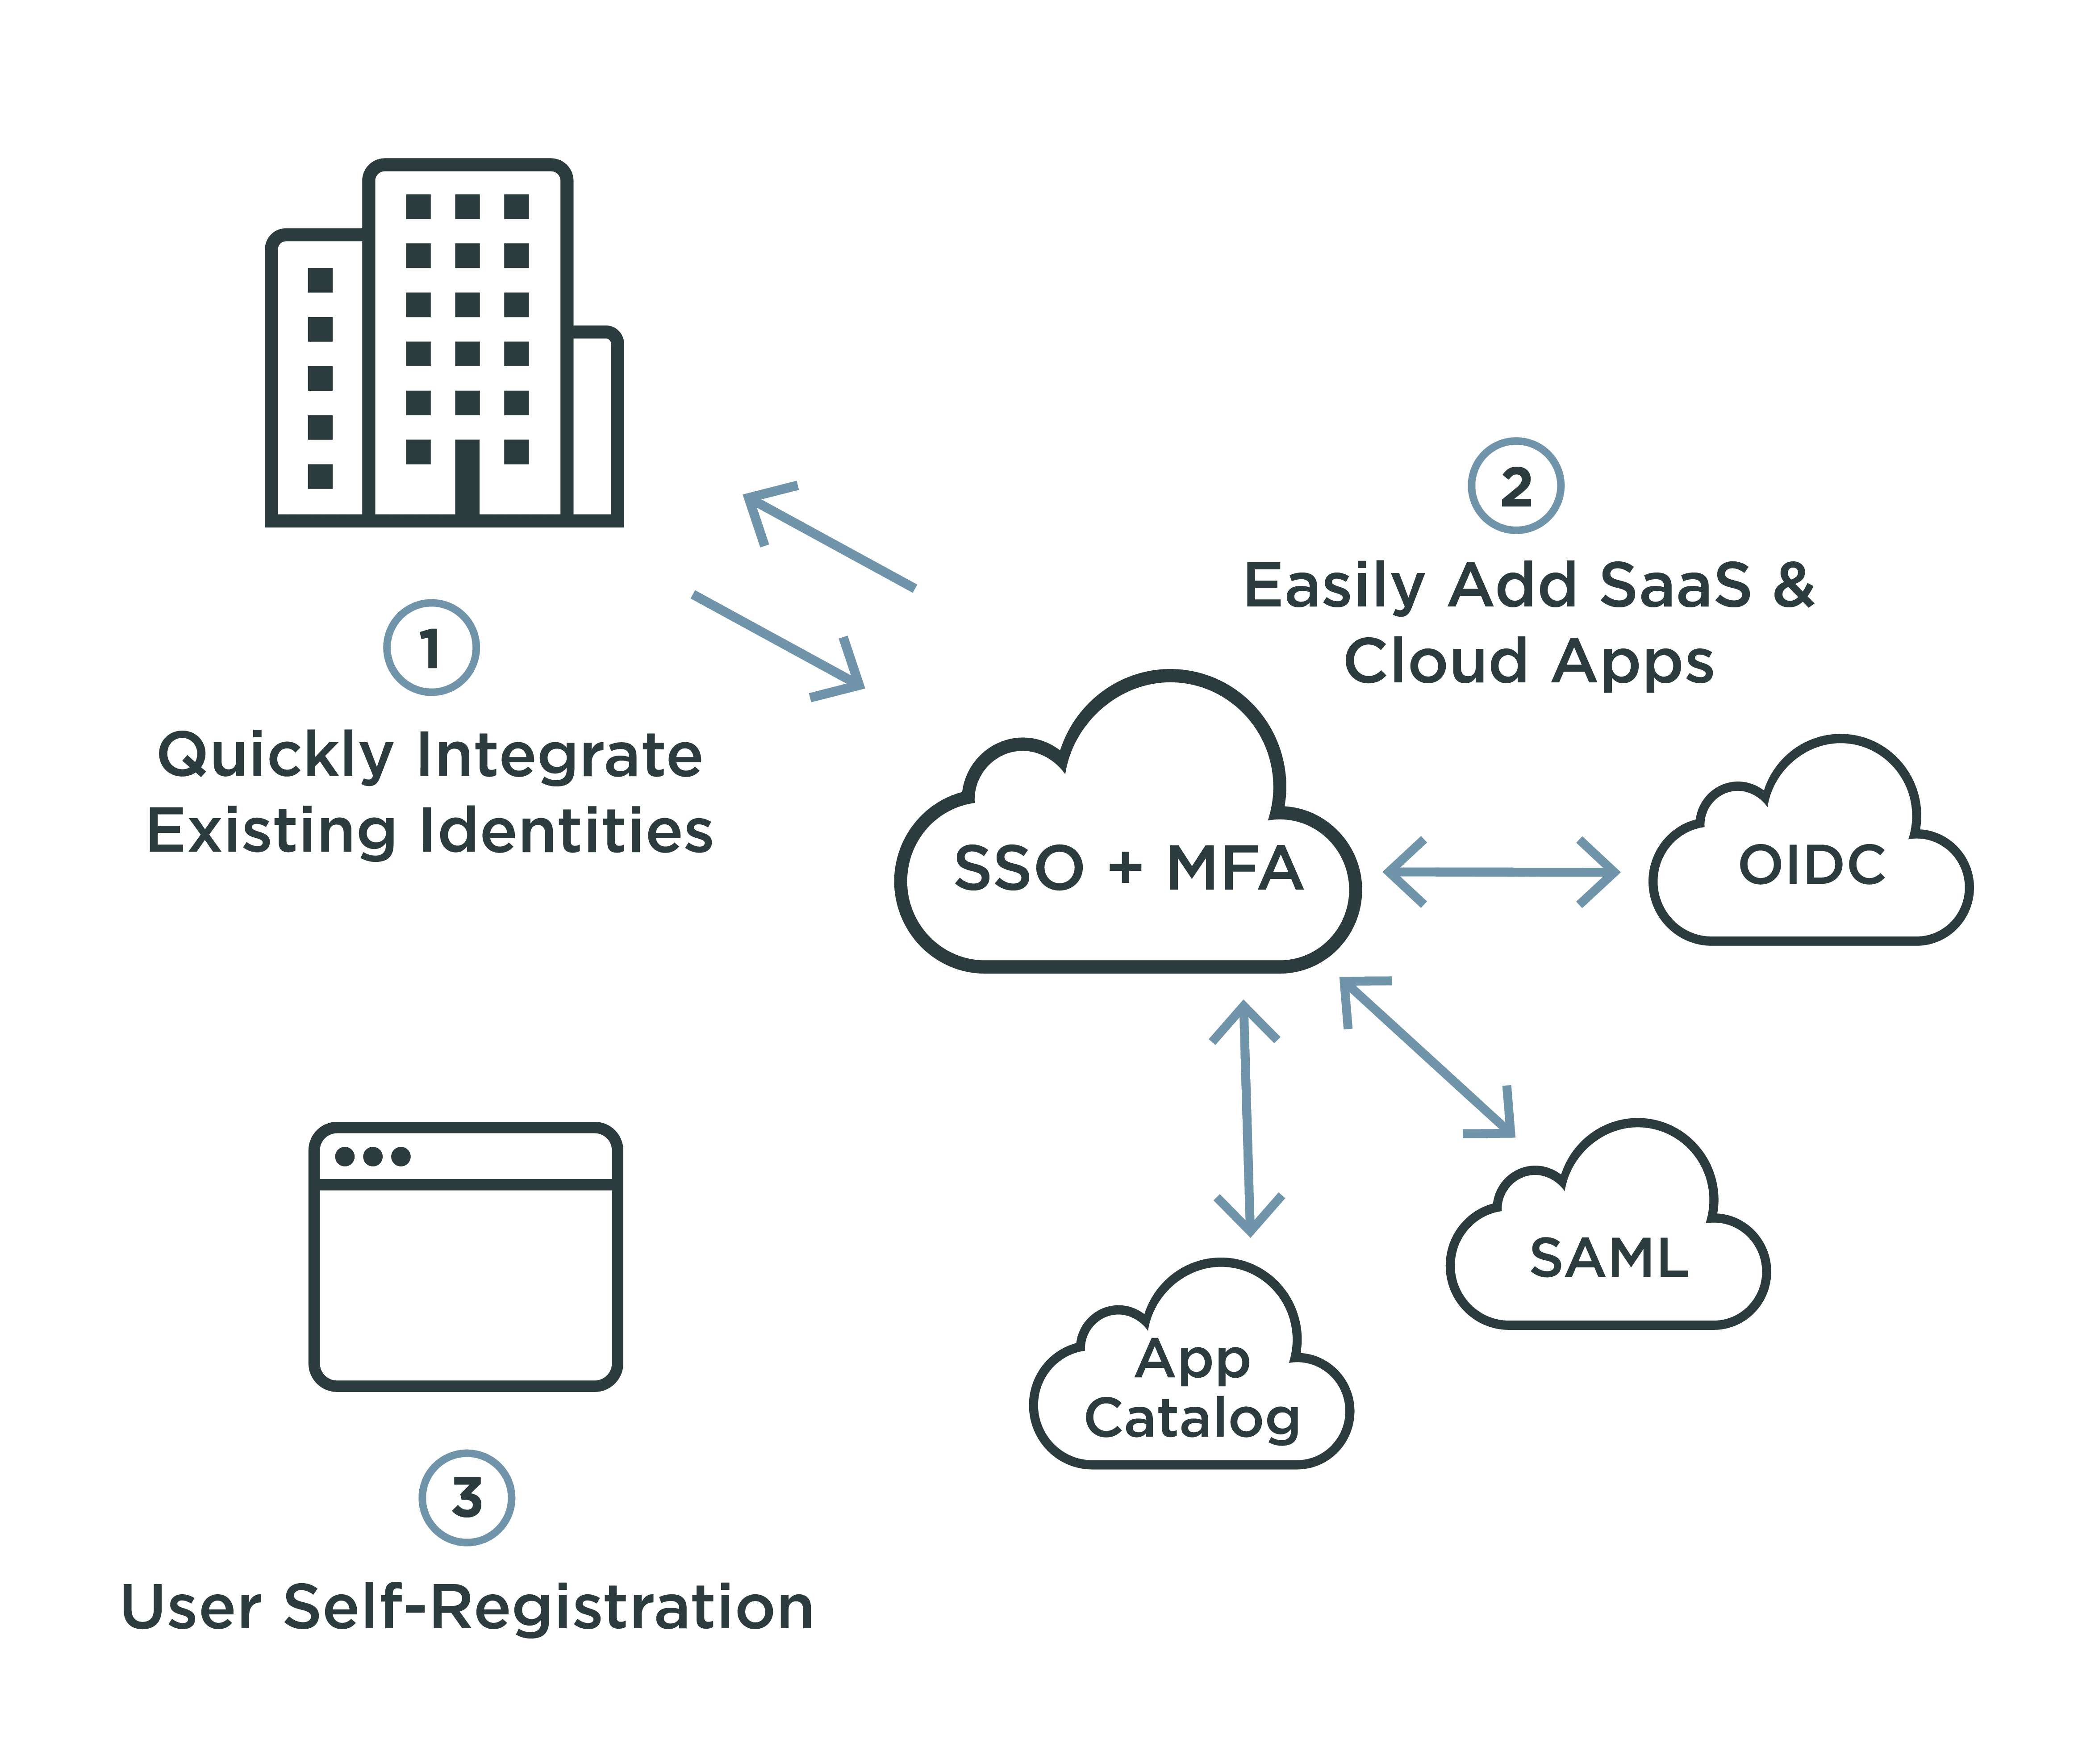 Diagram showing how a bundled SSO and MFA solution can easily add SaaS and cloud apps.